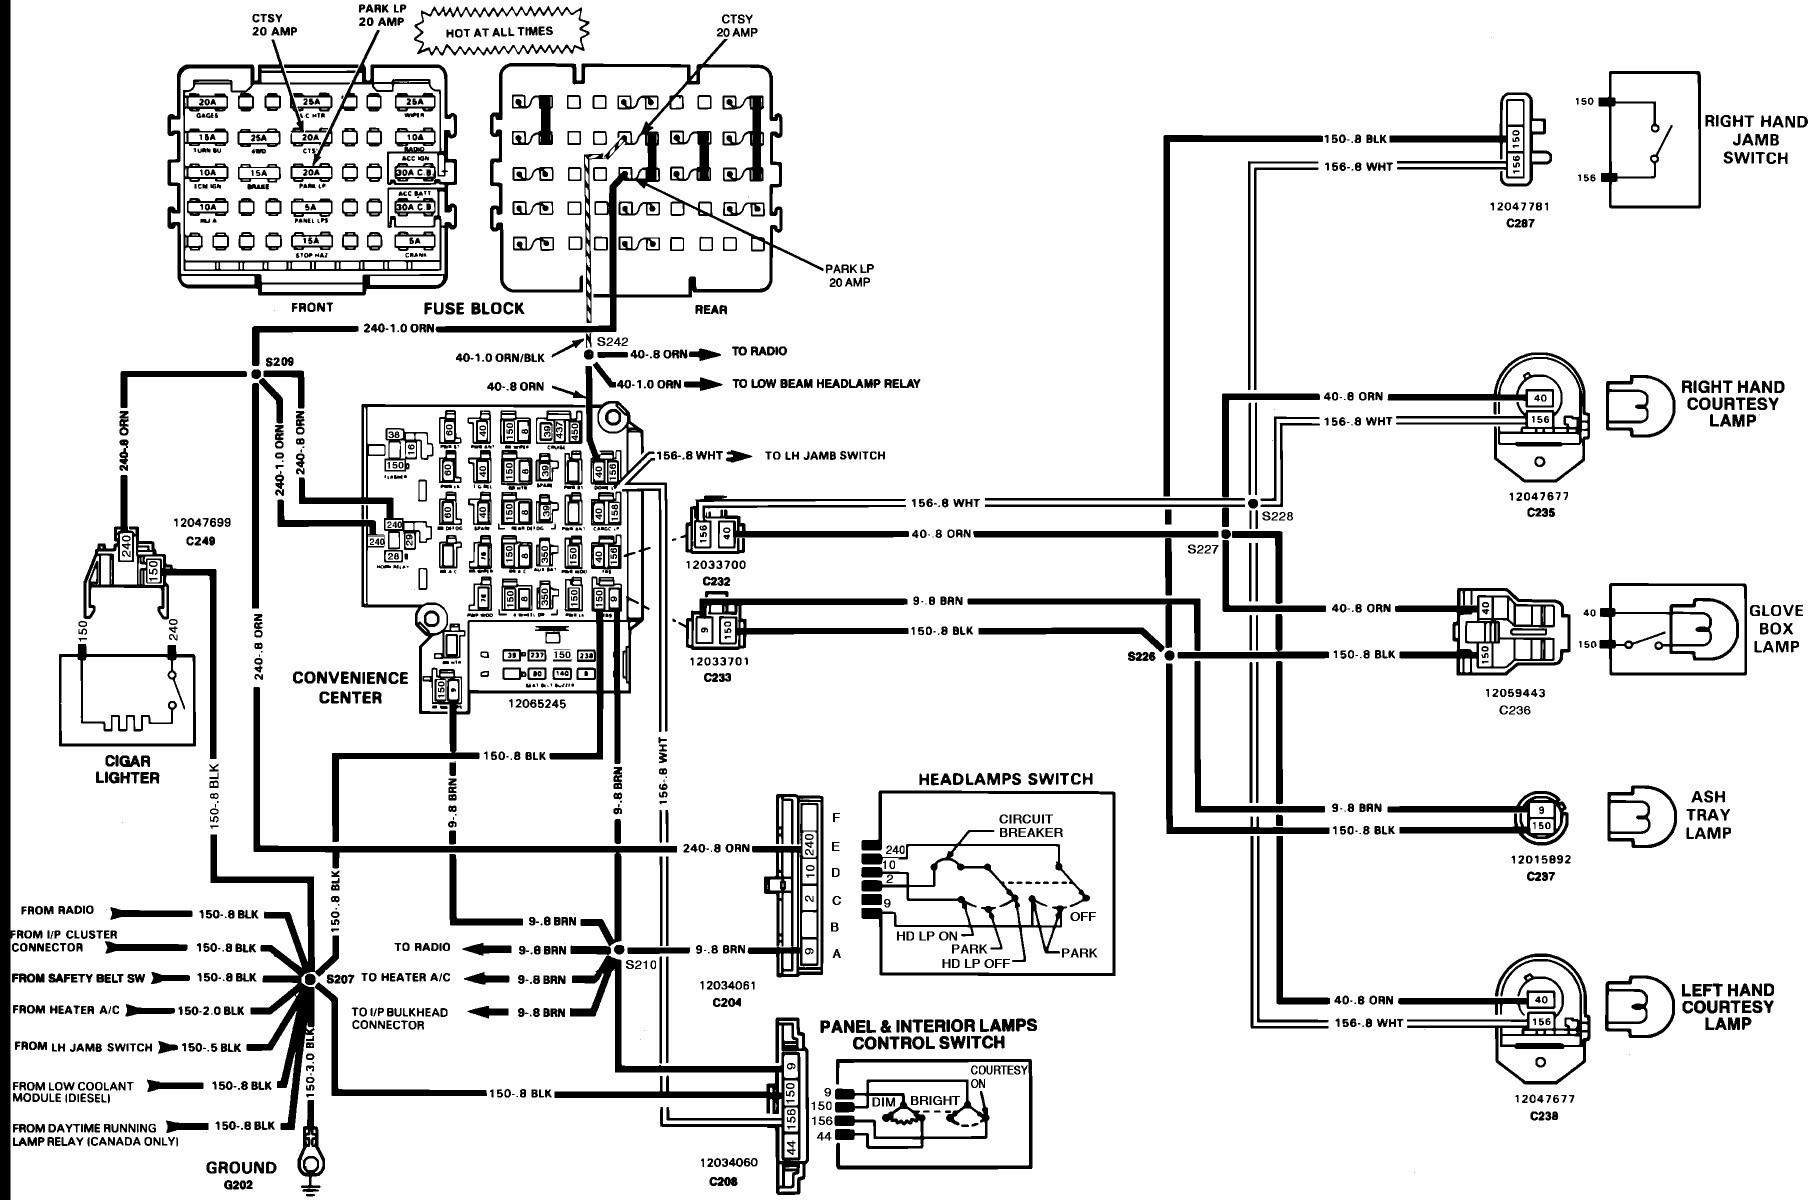 Kama Ts254c Tractor Wiring Diagram | Wiring Liry on argo wiring diagram, cummins wiring diagram, honda wiring diagram, kawasaki wiring diagram, dakota wiring diagram, japan wiring diagram, club wiring diagram, cooper wiring diagram, vega wiring diagram, taylor wiring diagram, johnson wiring diagram, nissan wiring diagram, gibson wiring diagram, kodiak wiring diagram, power wiring diagram, sabre wiring diagram, mercedes wiring diagram, clark wiring diagram, atlas wiring diagram, international wiring diagram,